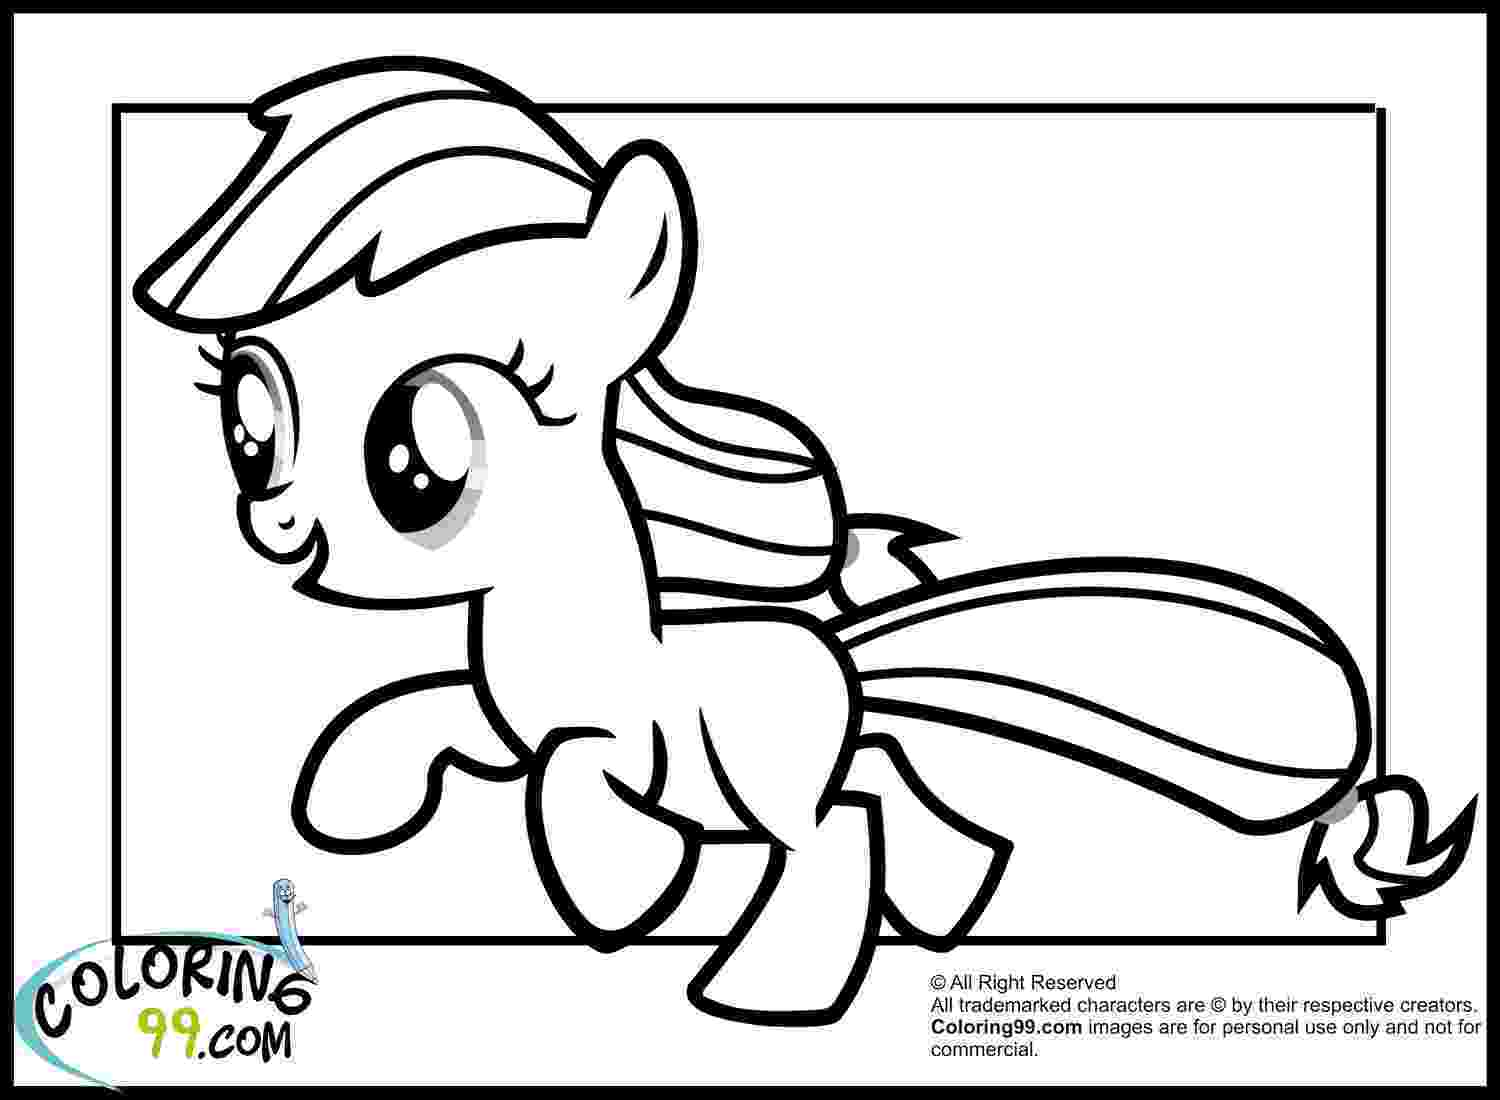 applejack coloring pages applejack coloring pages coloring pages to download and pages applejack coloring